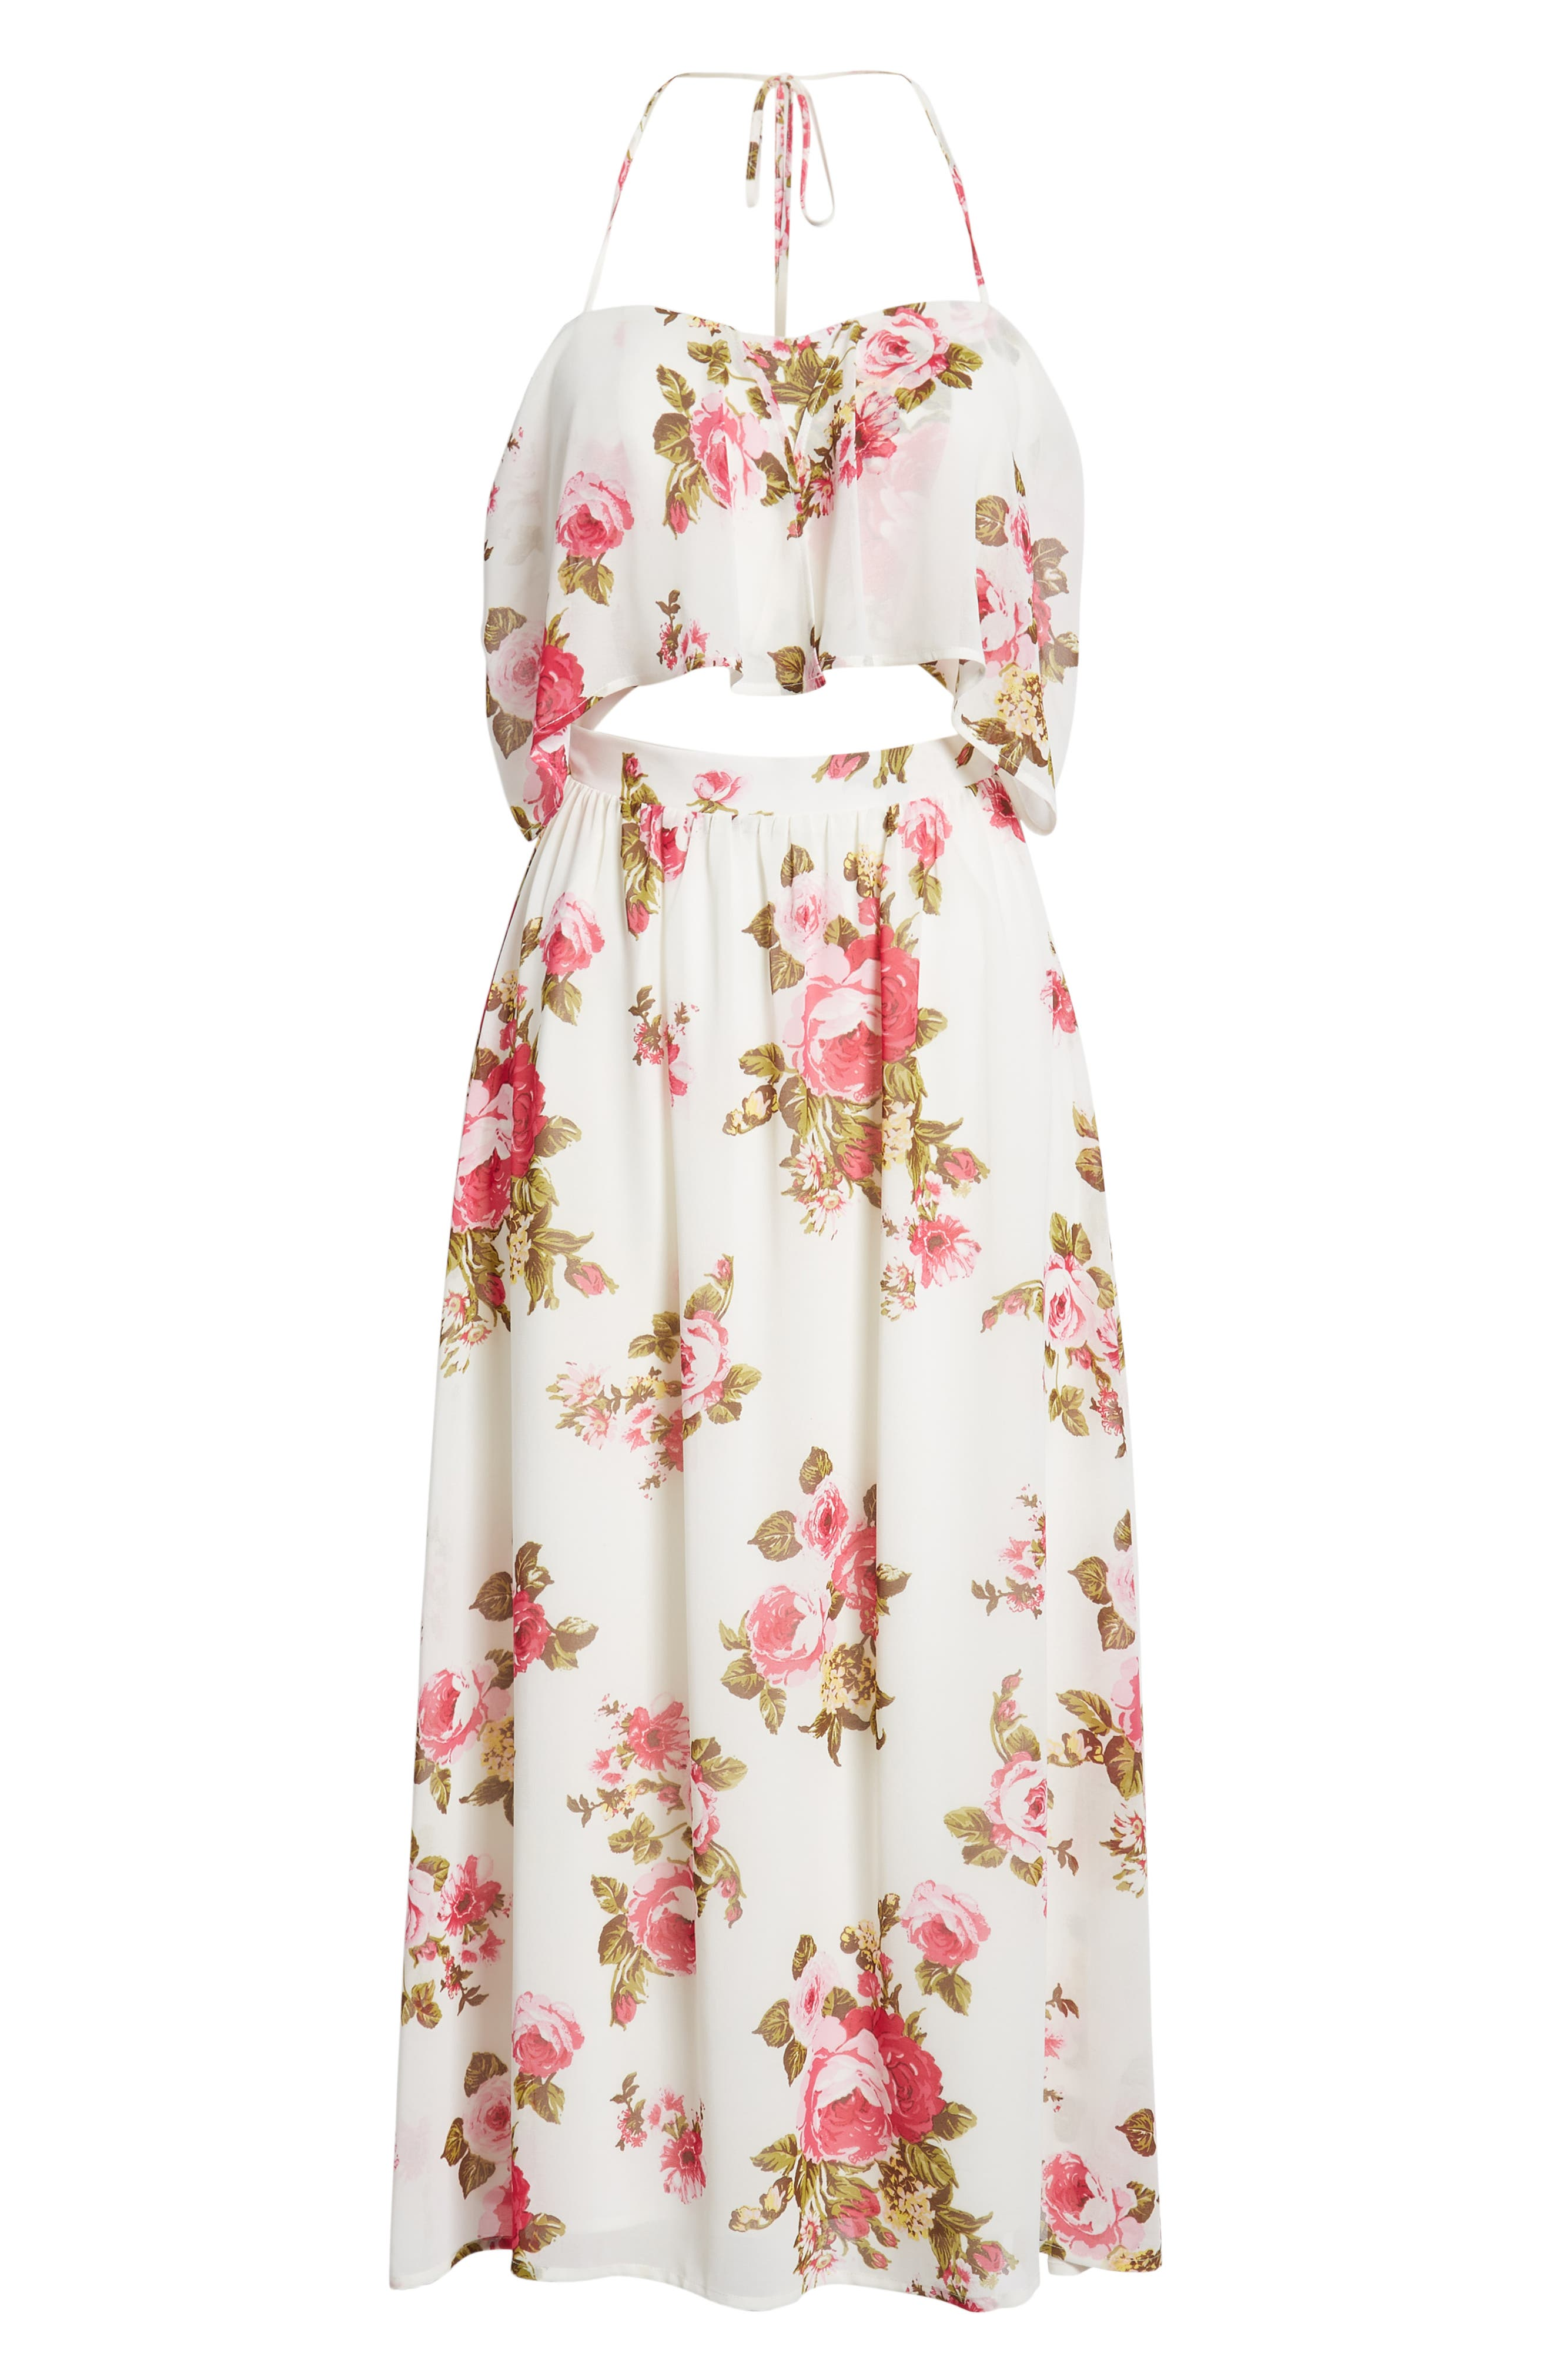 Floral Print Halter Midi Dress,                             Alternate thumbnail 7, color,                             Ivory Floral